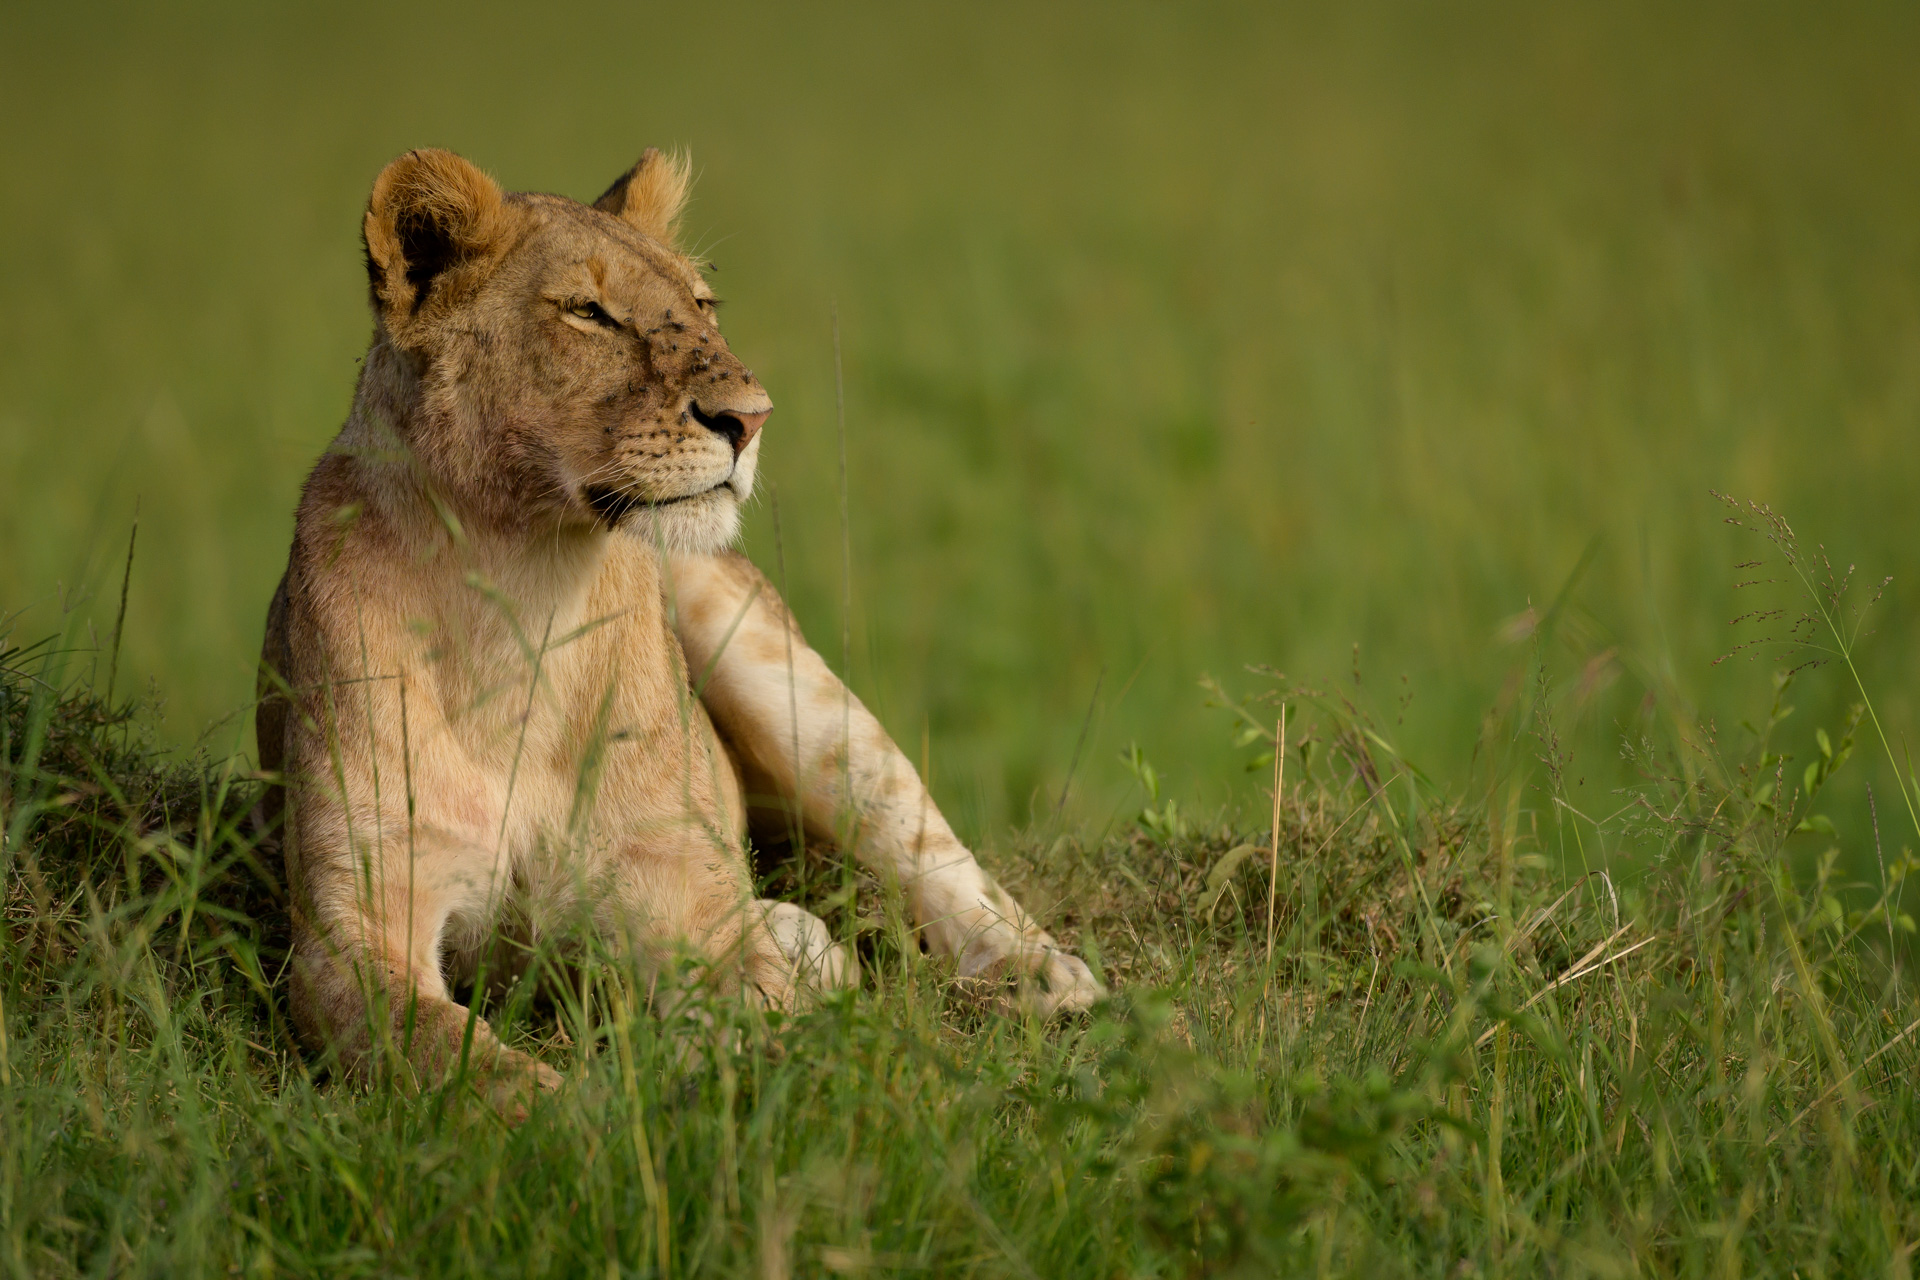 Lioness and green sitting